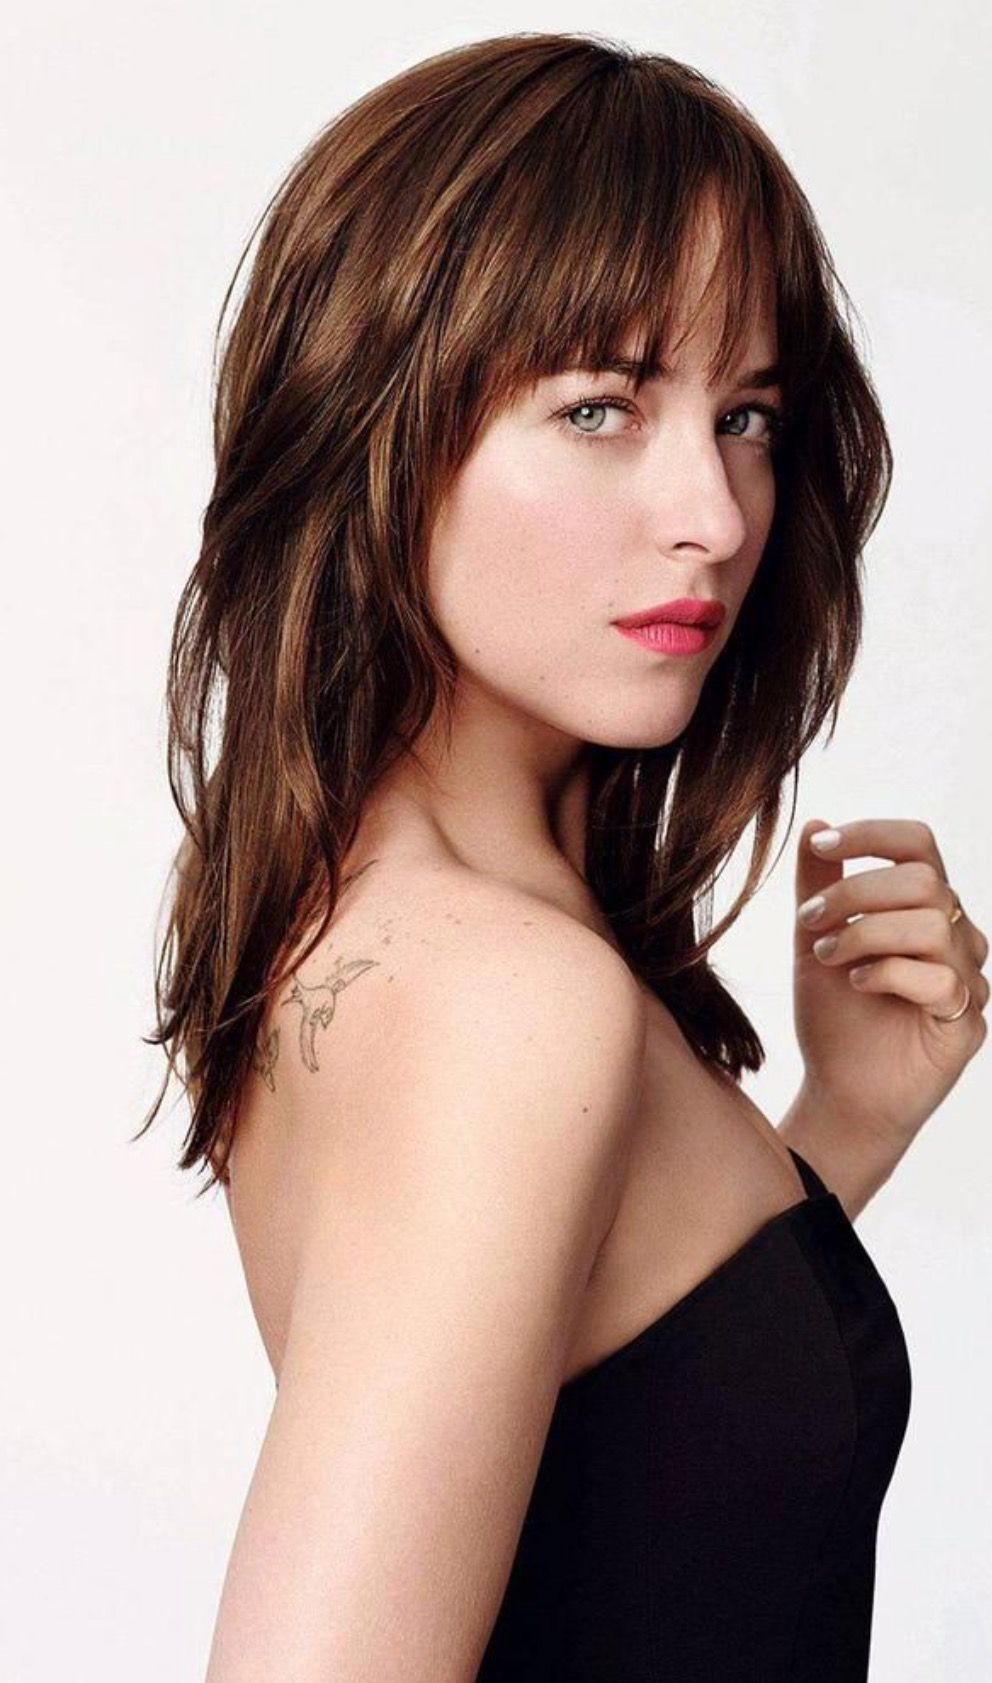 Pin by catalina testone on dakota johnson pinterest dakota